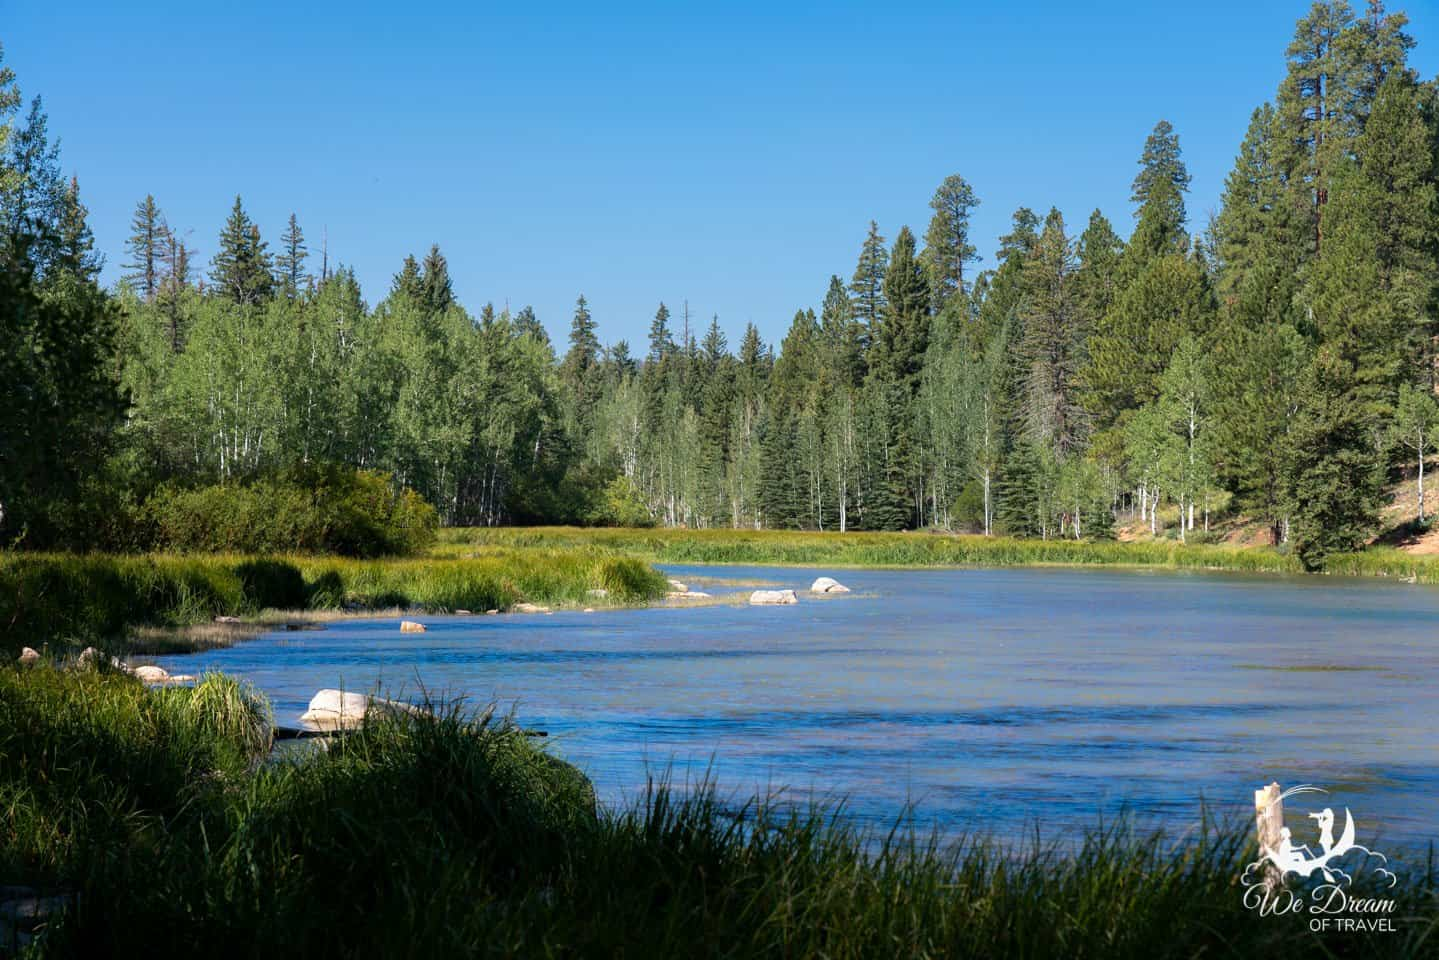 Duck Creek and Aspen-Mirror Lakes are postcard-worthy destinations.